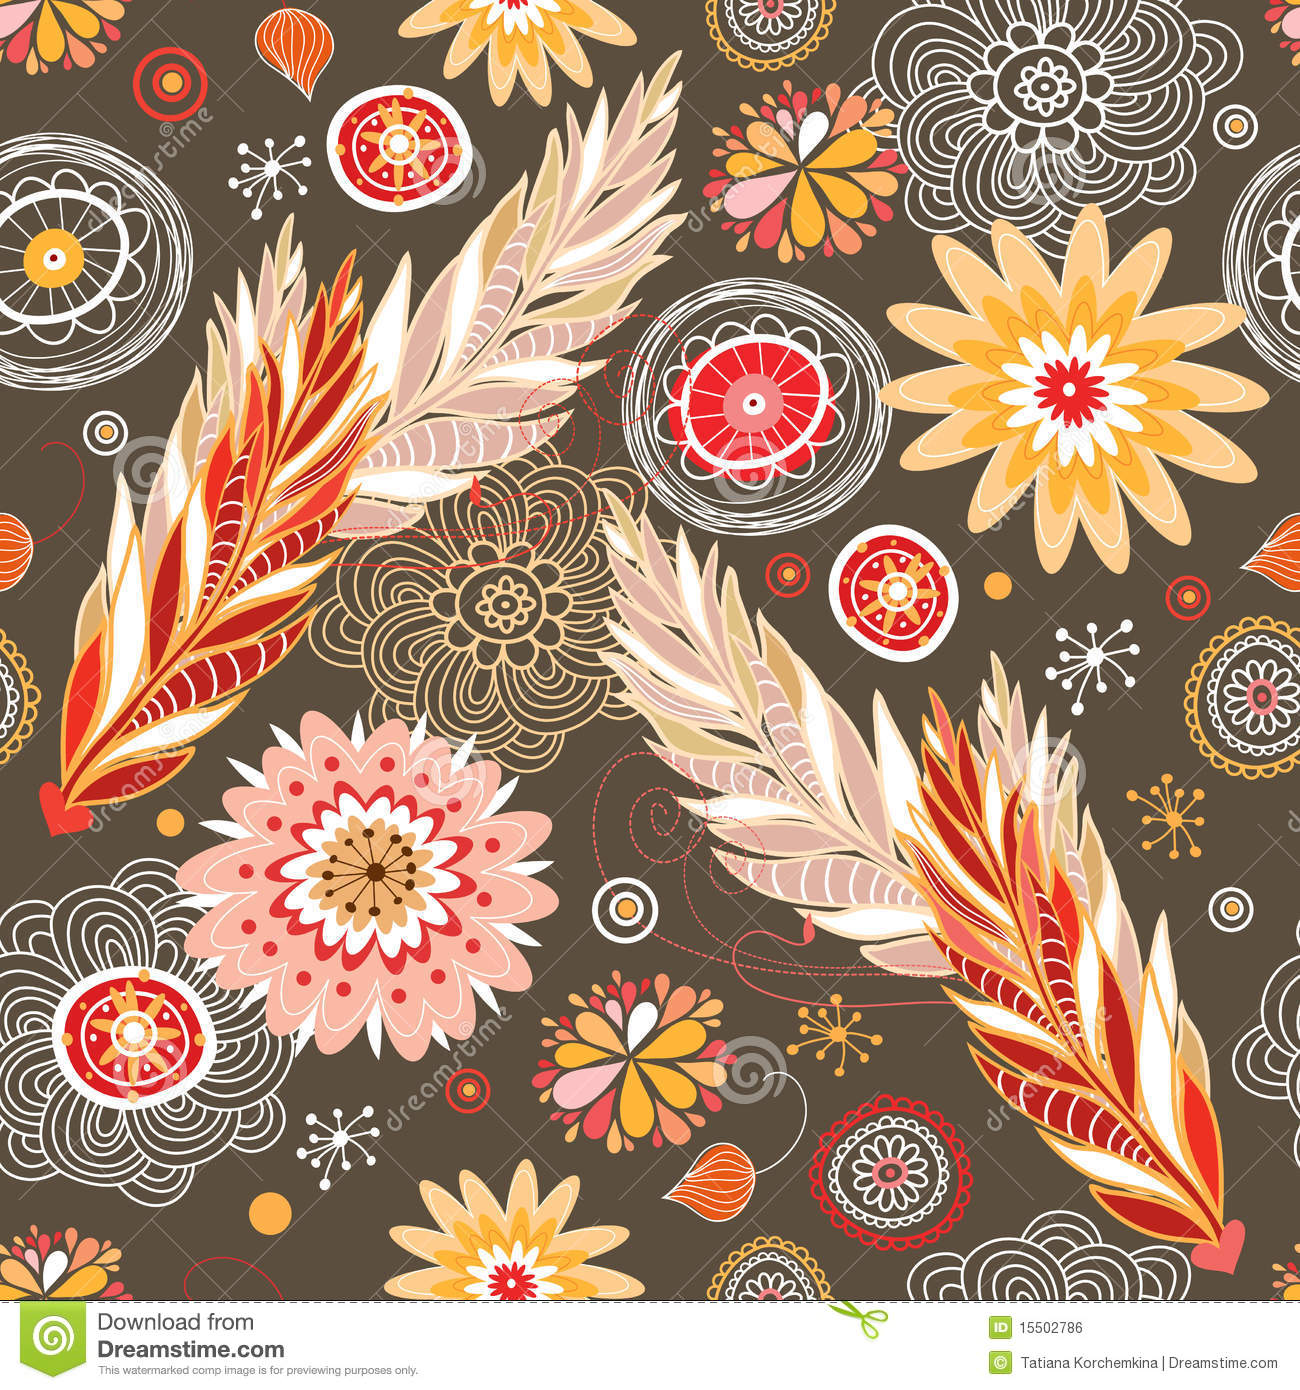 Free Desktop Wallpaper Fall Foliage Autumn Floral Patterns Stock Vector Illustration Of Brown